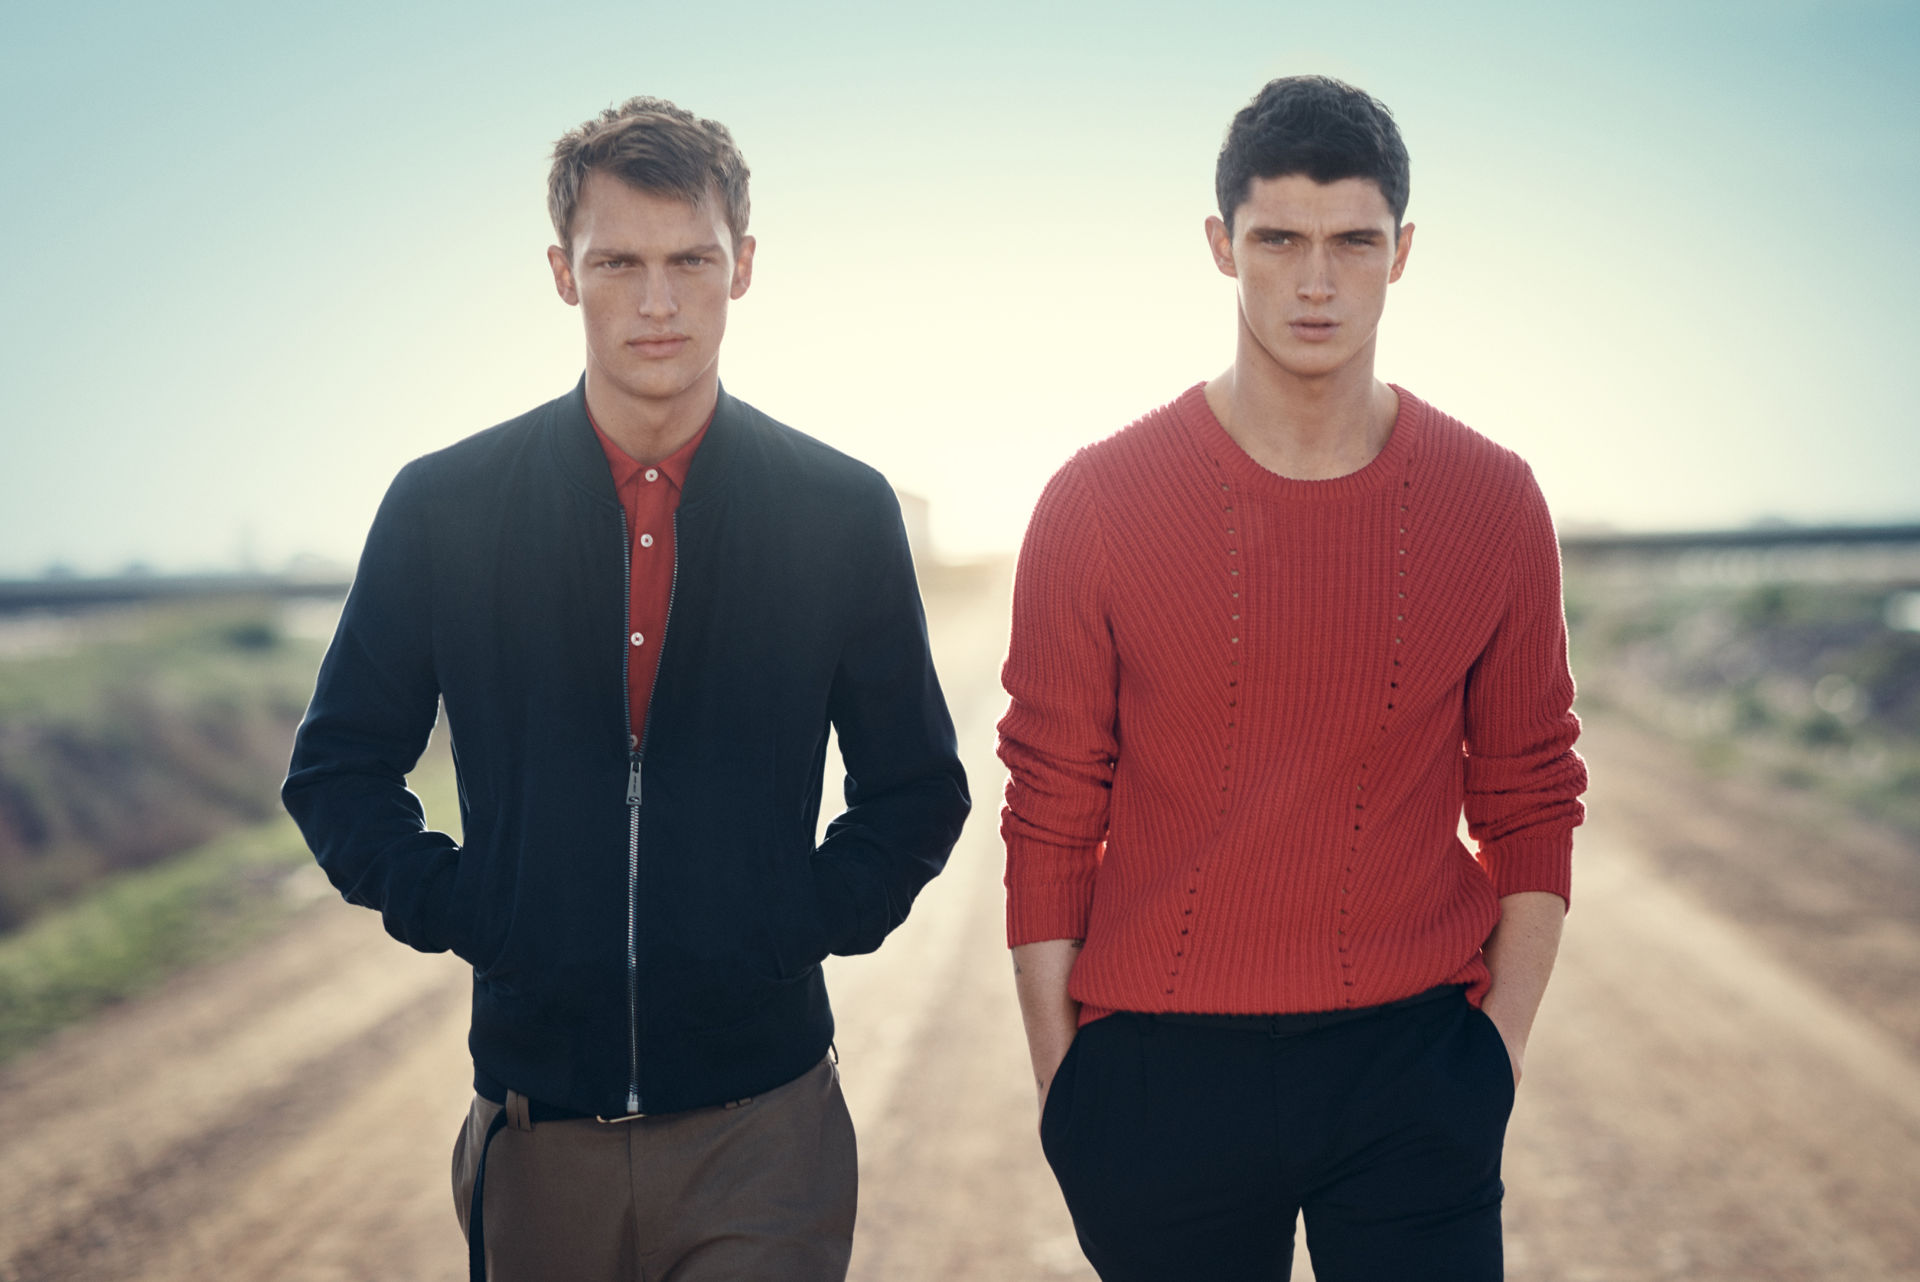 Major Inditex fast fashion company Zara exposed its New season: Spring/Summer 2015 Campaign starring by models Victor Nylander, David Alexander Flinn and Matthew Holt.